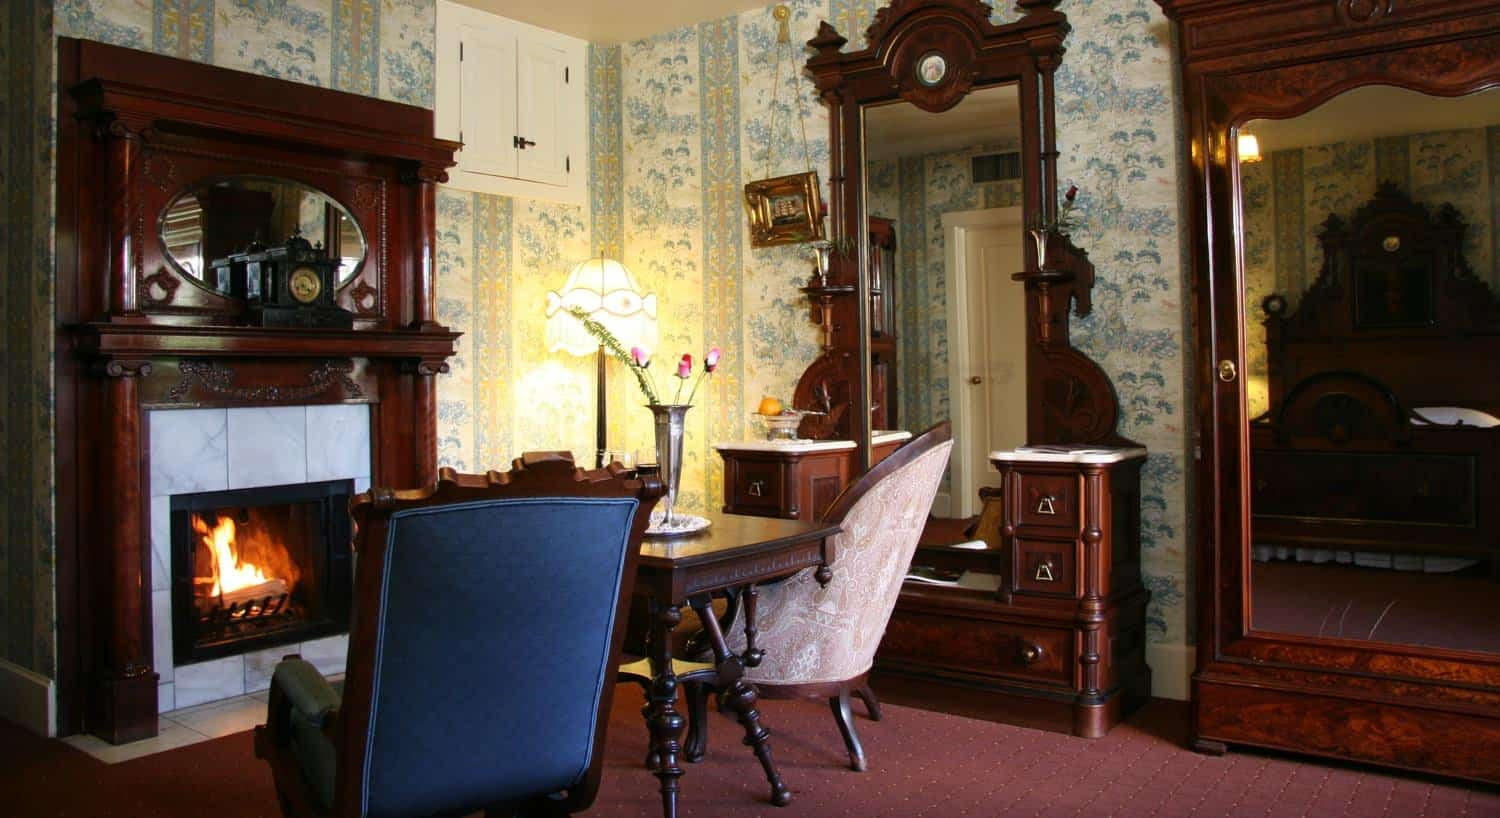 Captains guest room, floral and striped wallpaper, carpeting, carved wood furniture, fireplace with wood surround